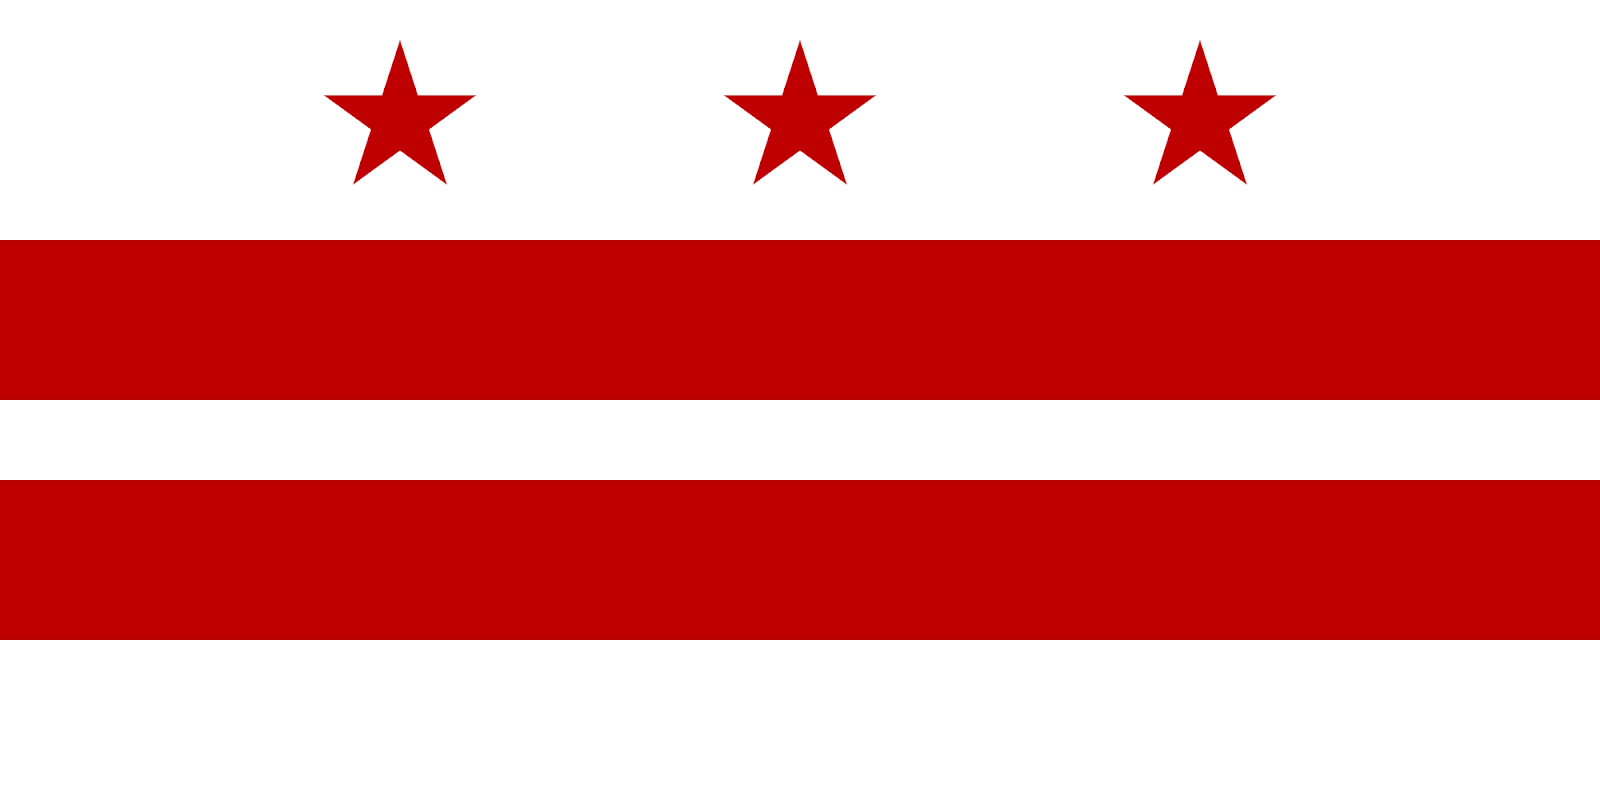 http://upload.wikimedia.org/wikipedia/commons/thumb/3/3e/Flag_of_Washington,_D.C..svg/2000px-Flag_of_Washington,_D.C..svg.png